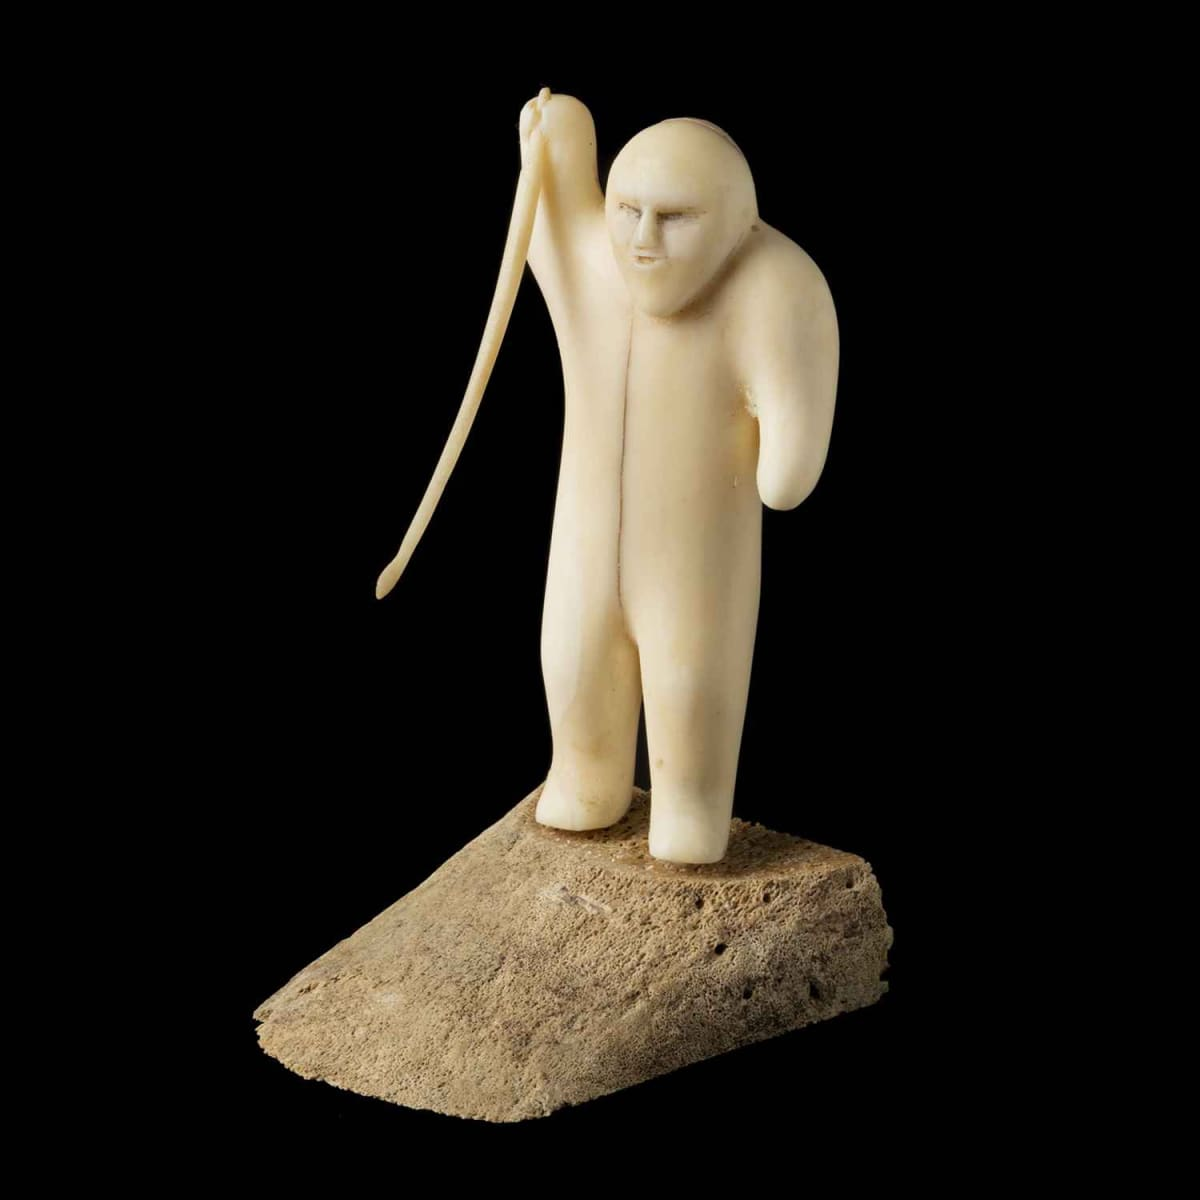 14. FABIEN OOGAAQ (1923-1992), KUGAARUK (PELLY BAY) Hunter with a Spear, 1970 SOLD